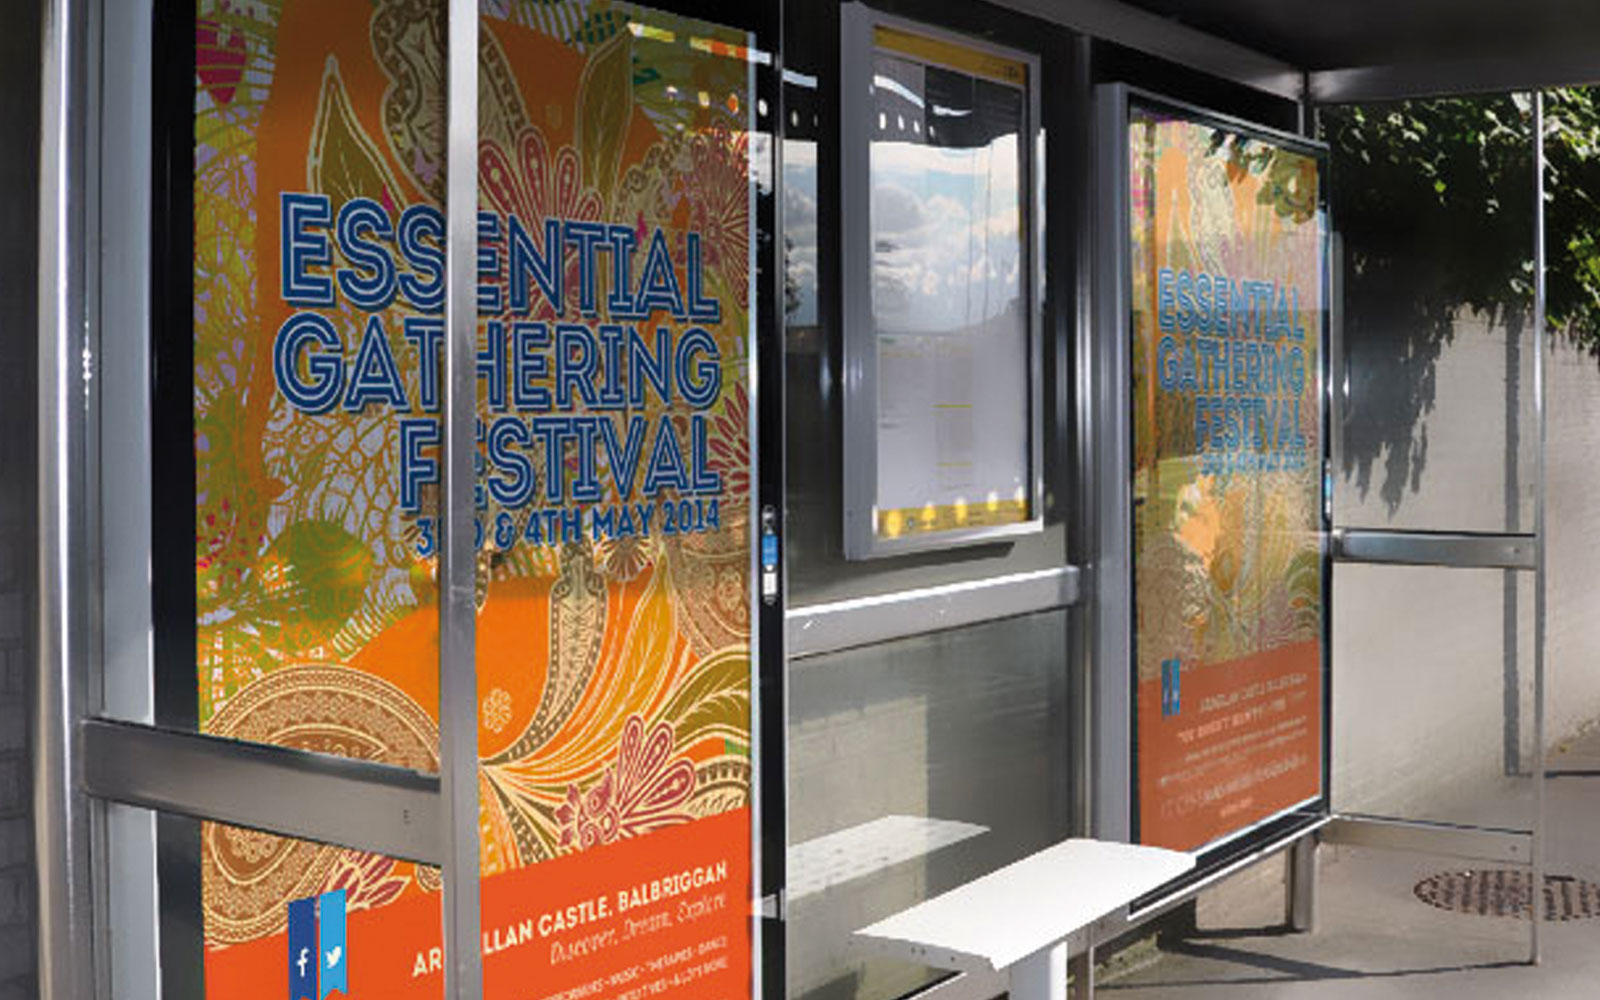 Bus Shelter signage for Essential Gathering Festival